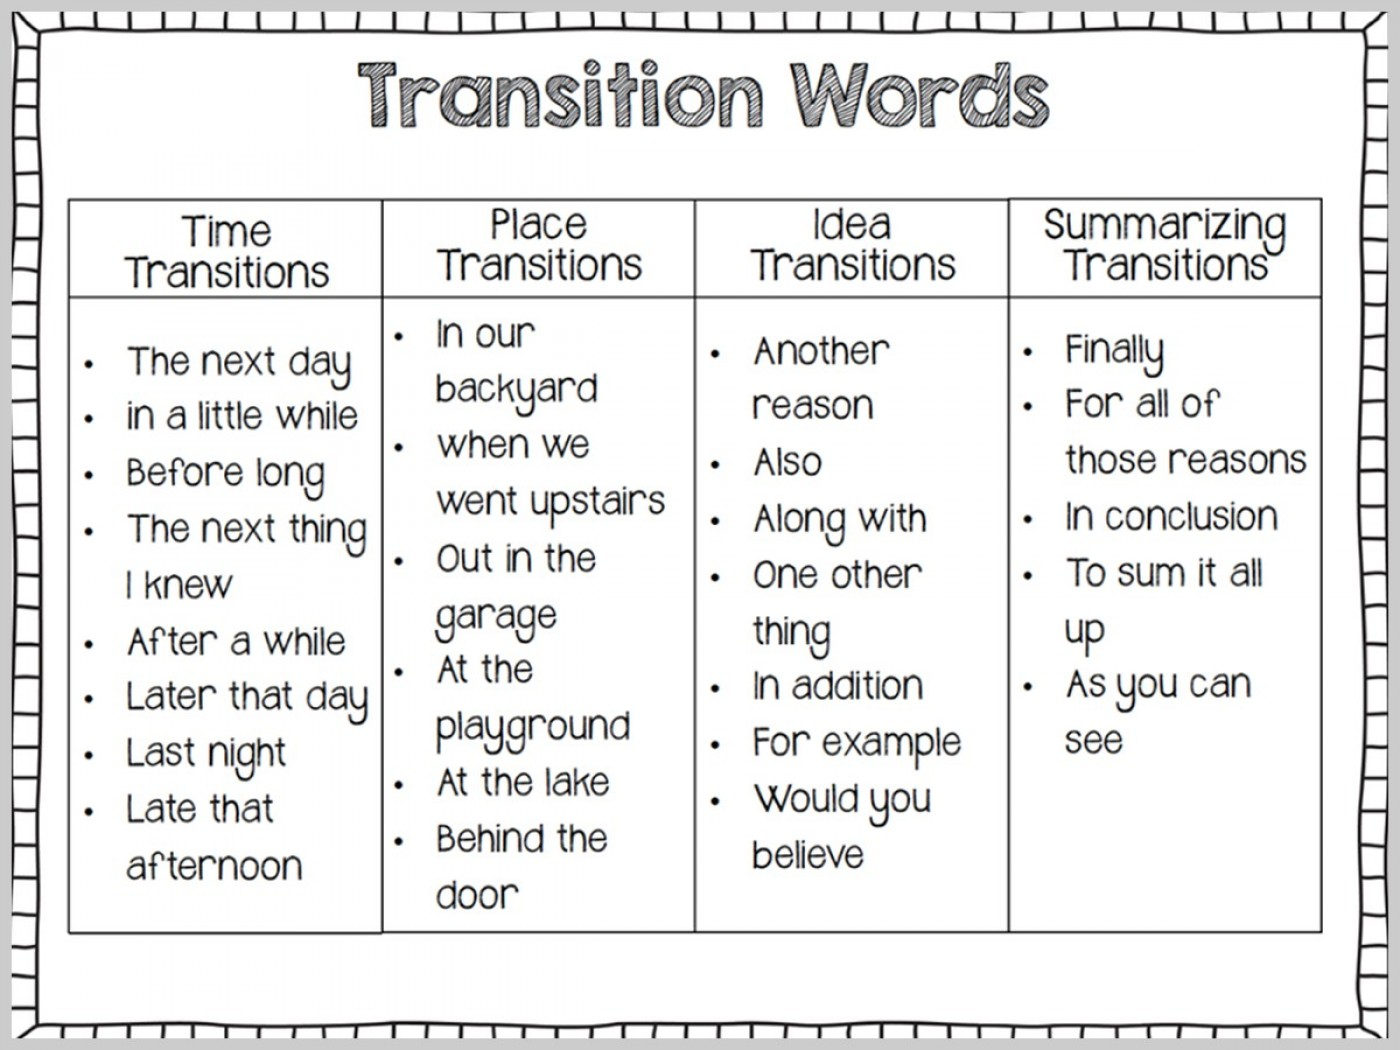 003 Transition Words For Essay Goal Blockety Co List Of Transitional Writing Essays Pdf French Forum Linking And Phrases Fluent An Argumentative Rare Paragraph In Spanish 4th Grade 1400